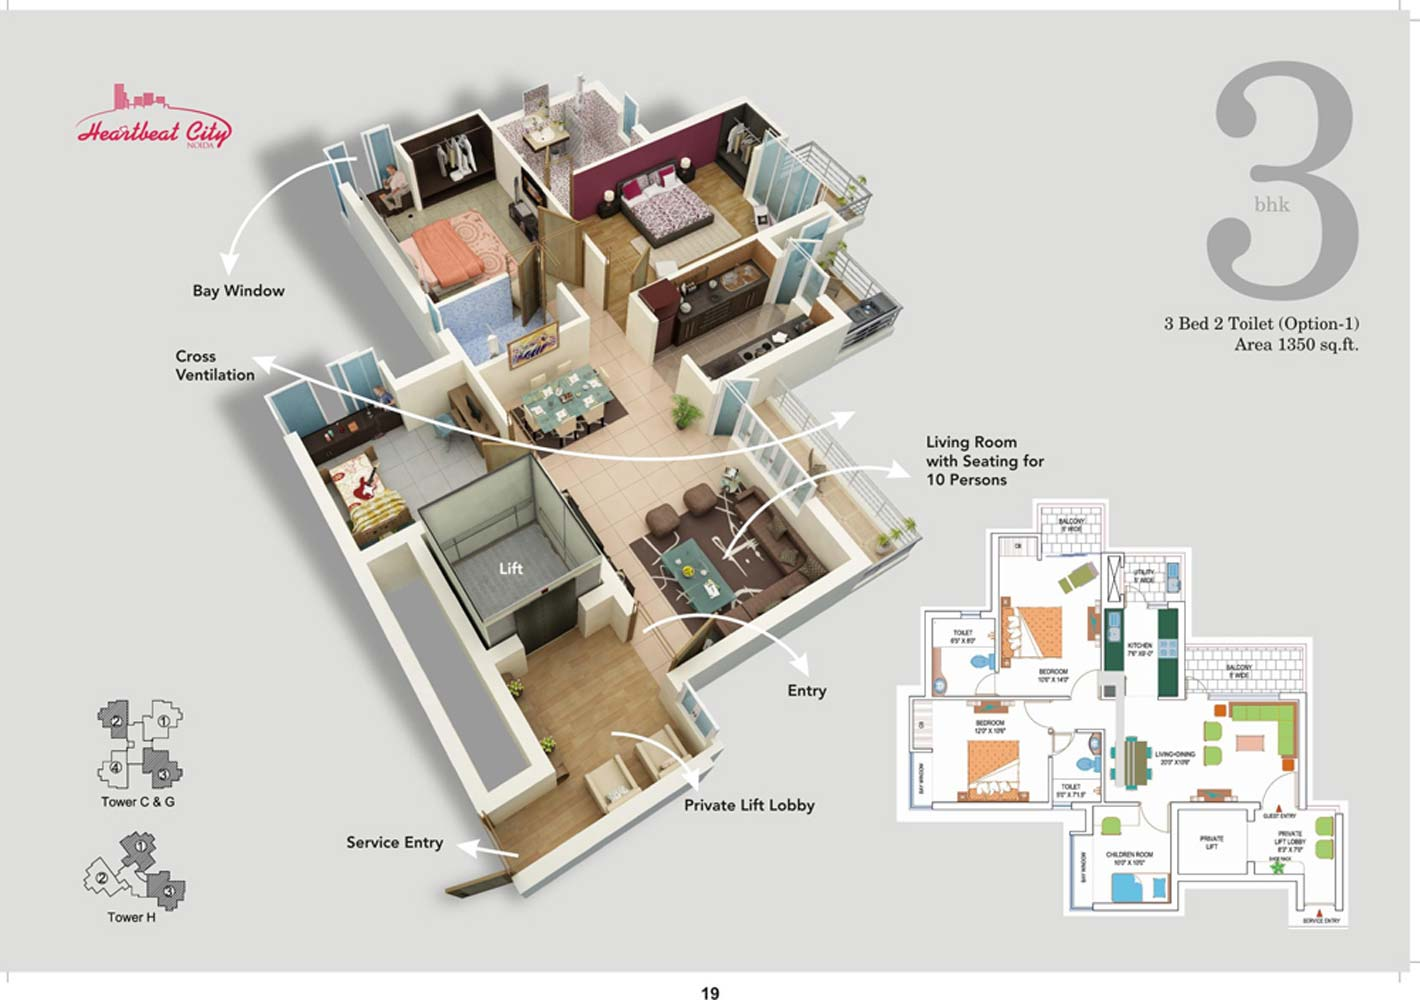 amrapali heart beat city floor plan 3BHK 1350 sqft